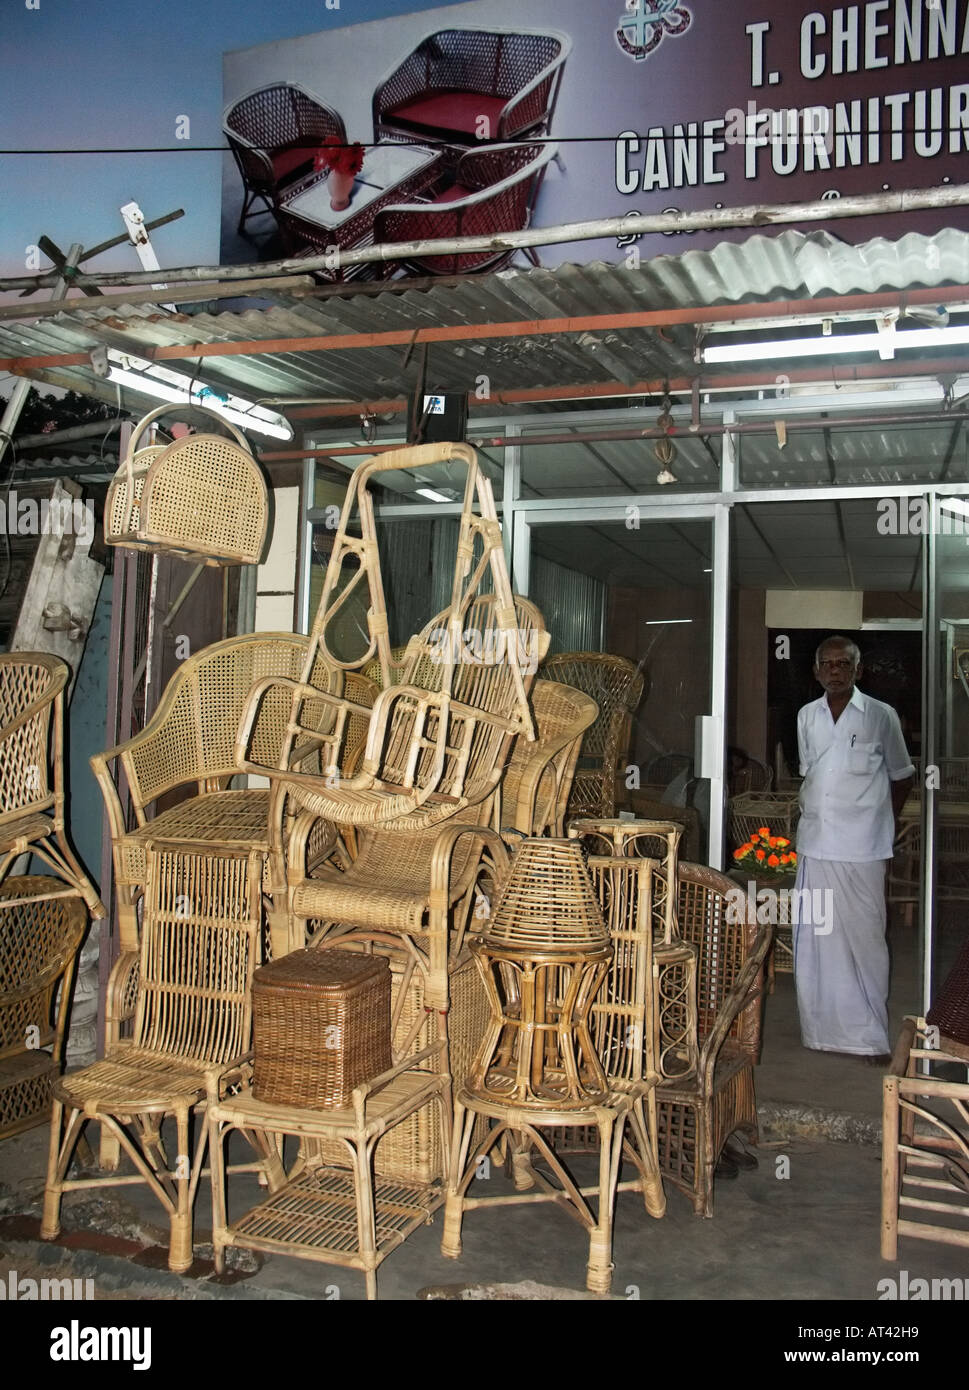 Cane furniture shop Chennai Madras India - Stock Image